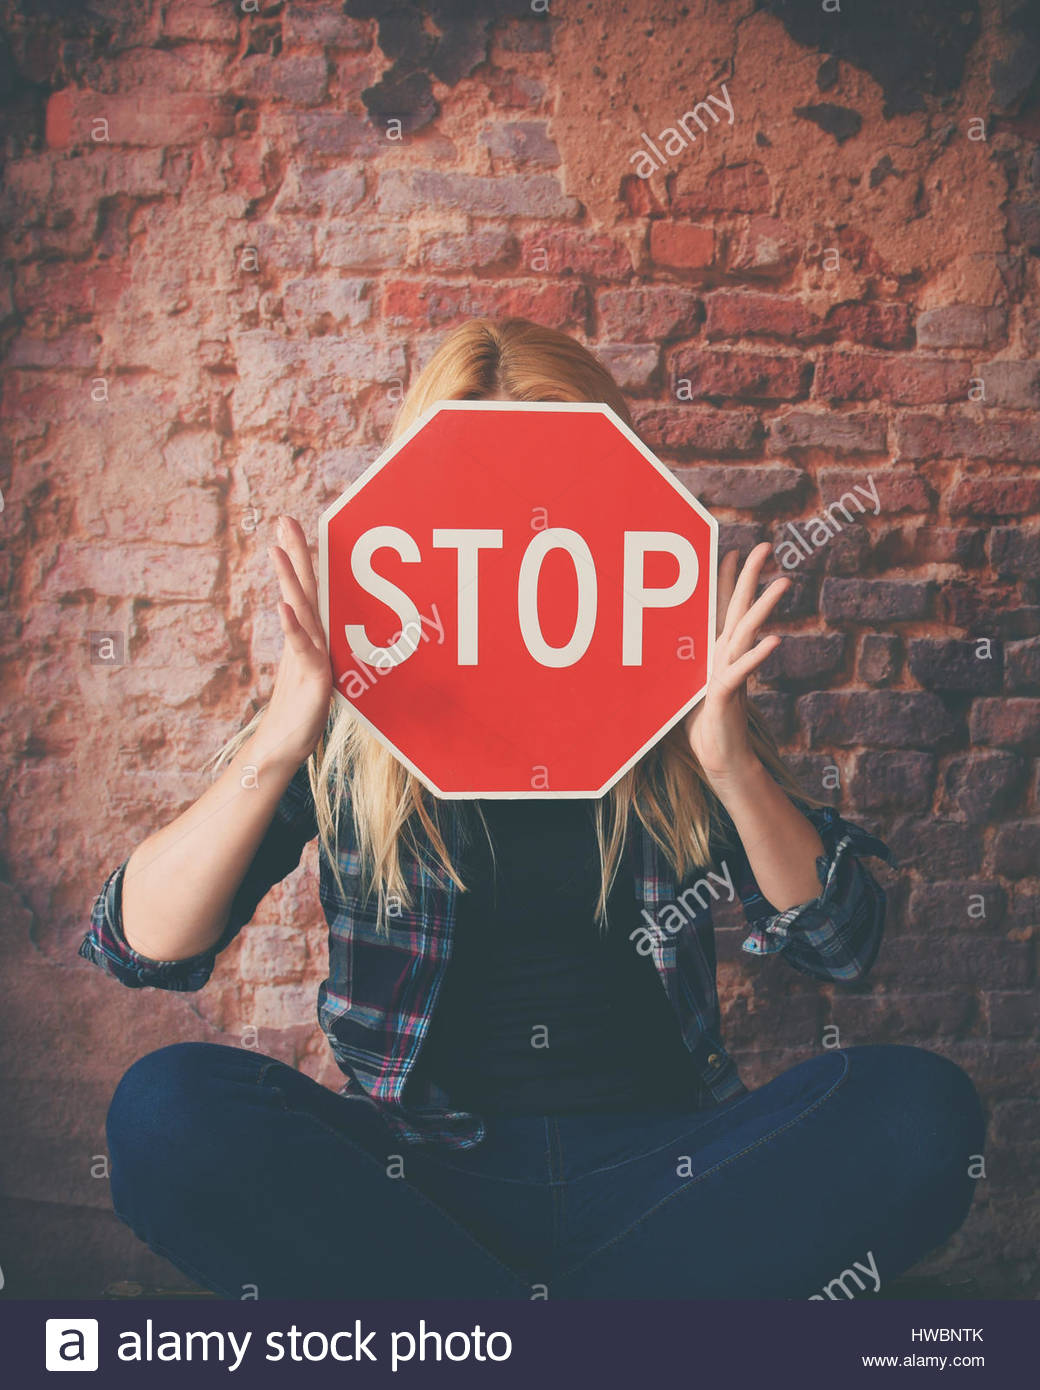 A young girl is holding a stop sign to her face for a concept of violence, hate or texting while driving. - Stock Image